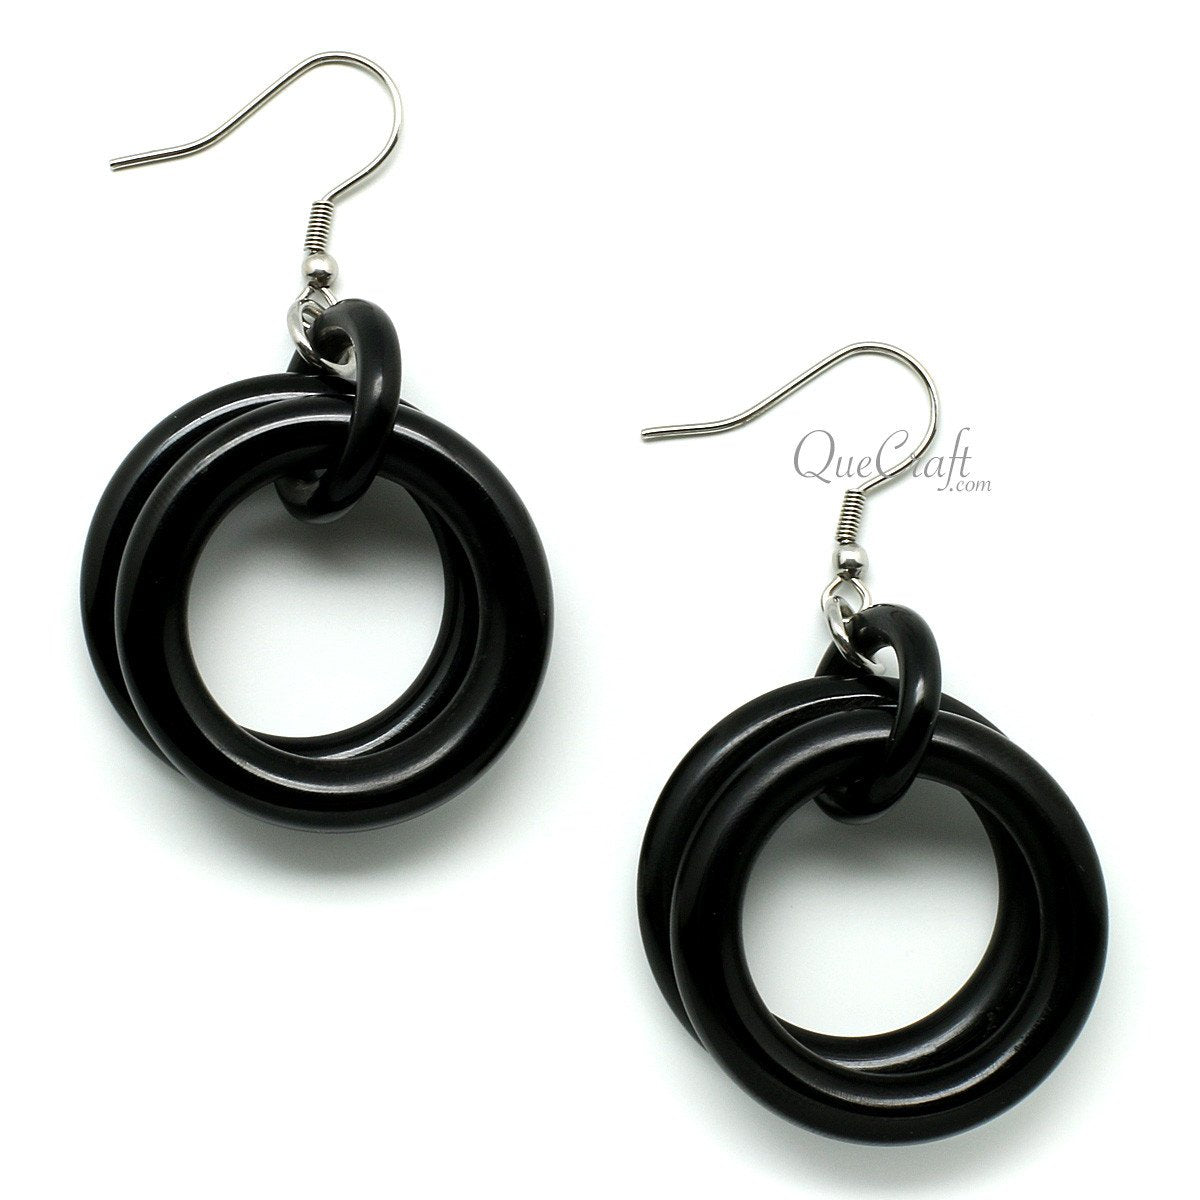 Horn Earrings #10037 - HORN.JEWELRY by QueCraft